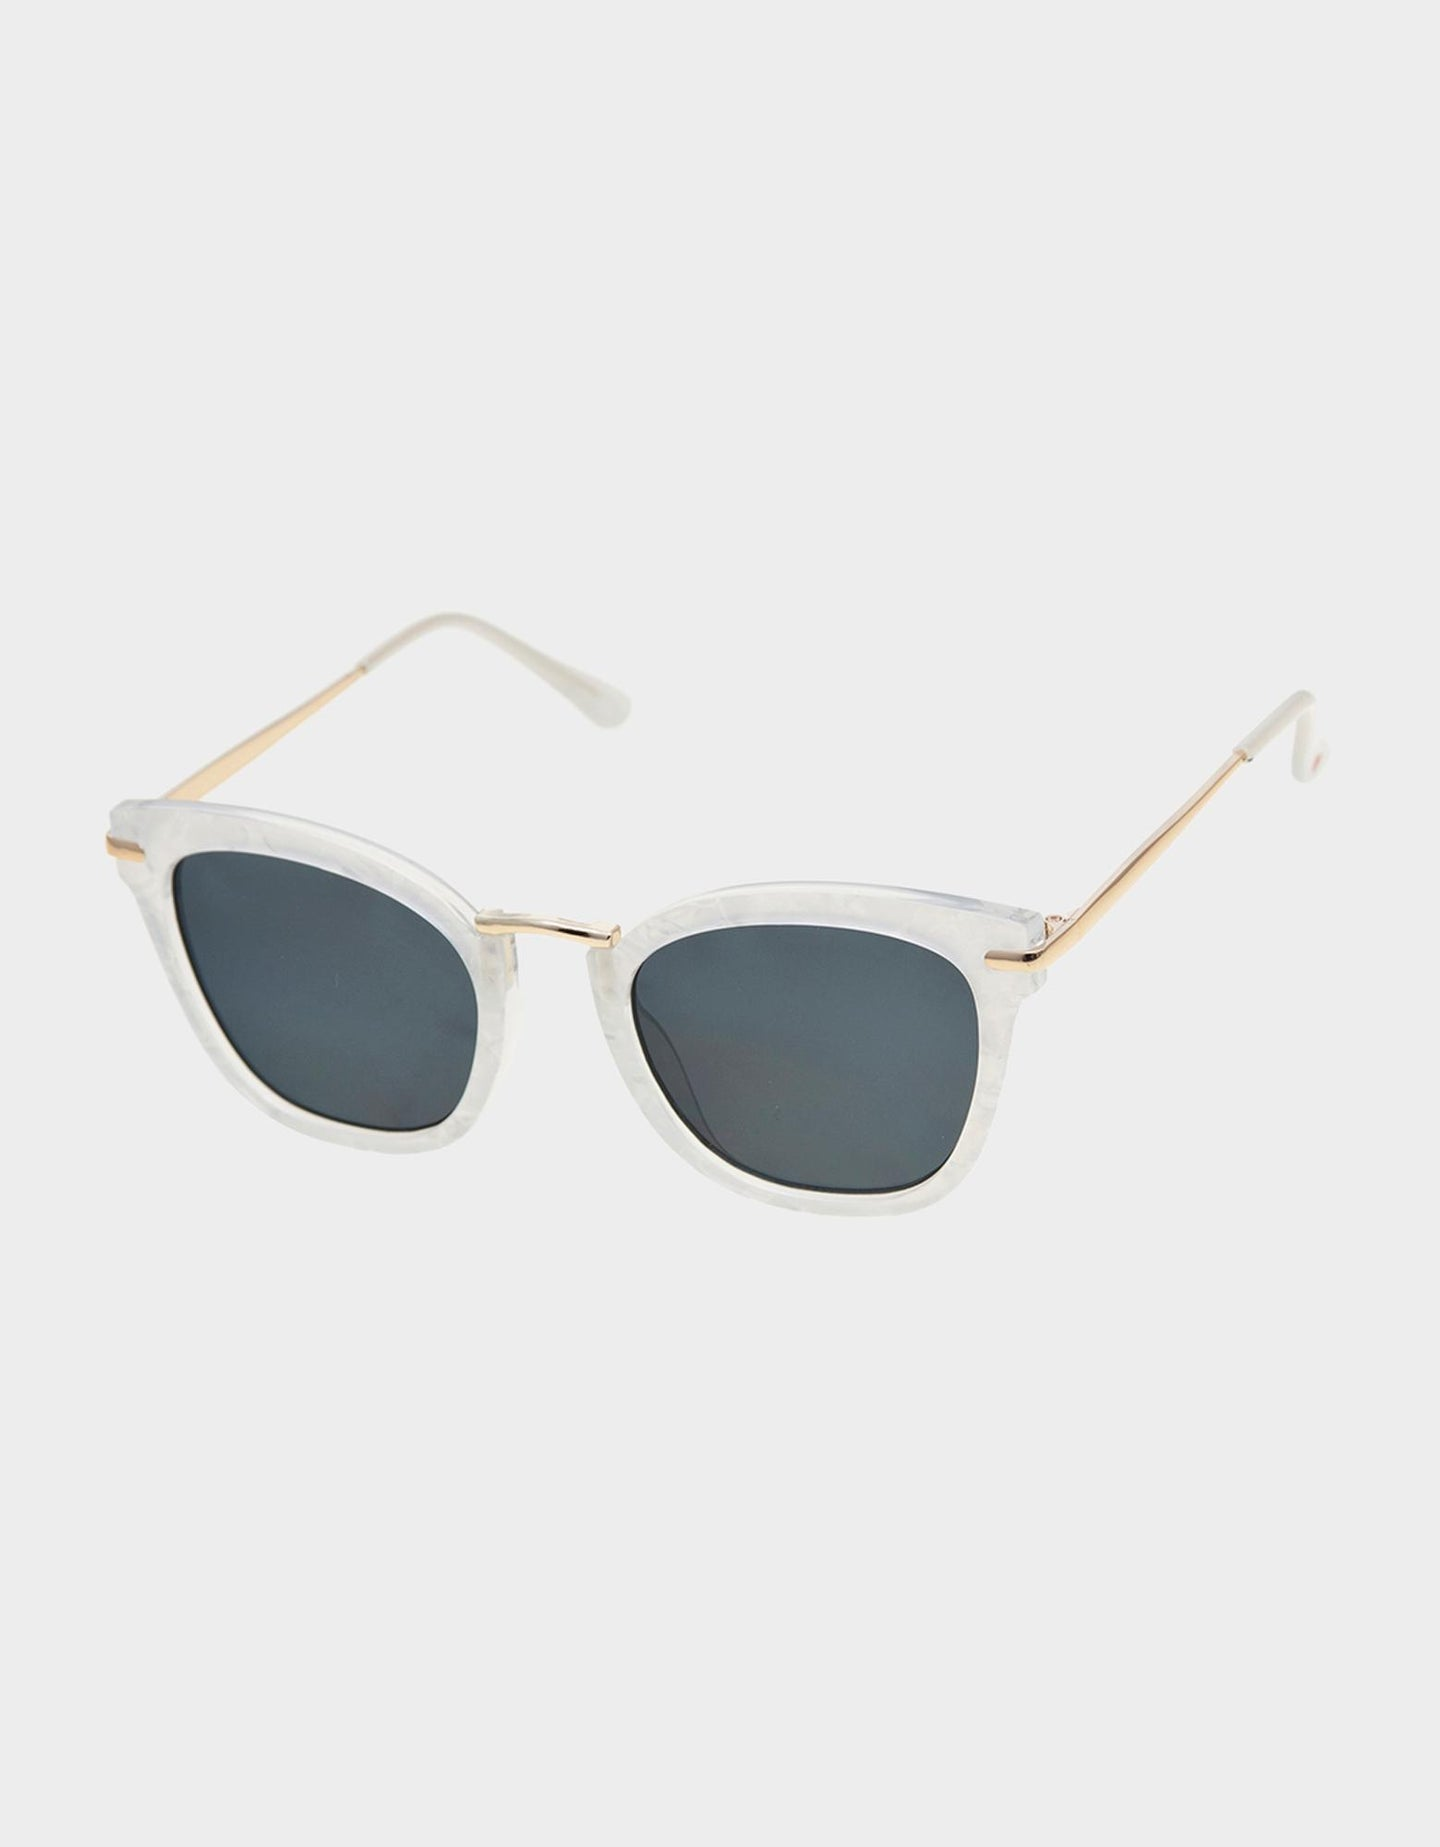 IN THE DETAILS SUNGLASSES WHITE - ACCESSORIES - Betsey Johnson